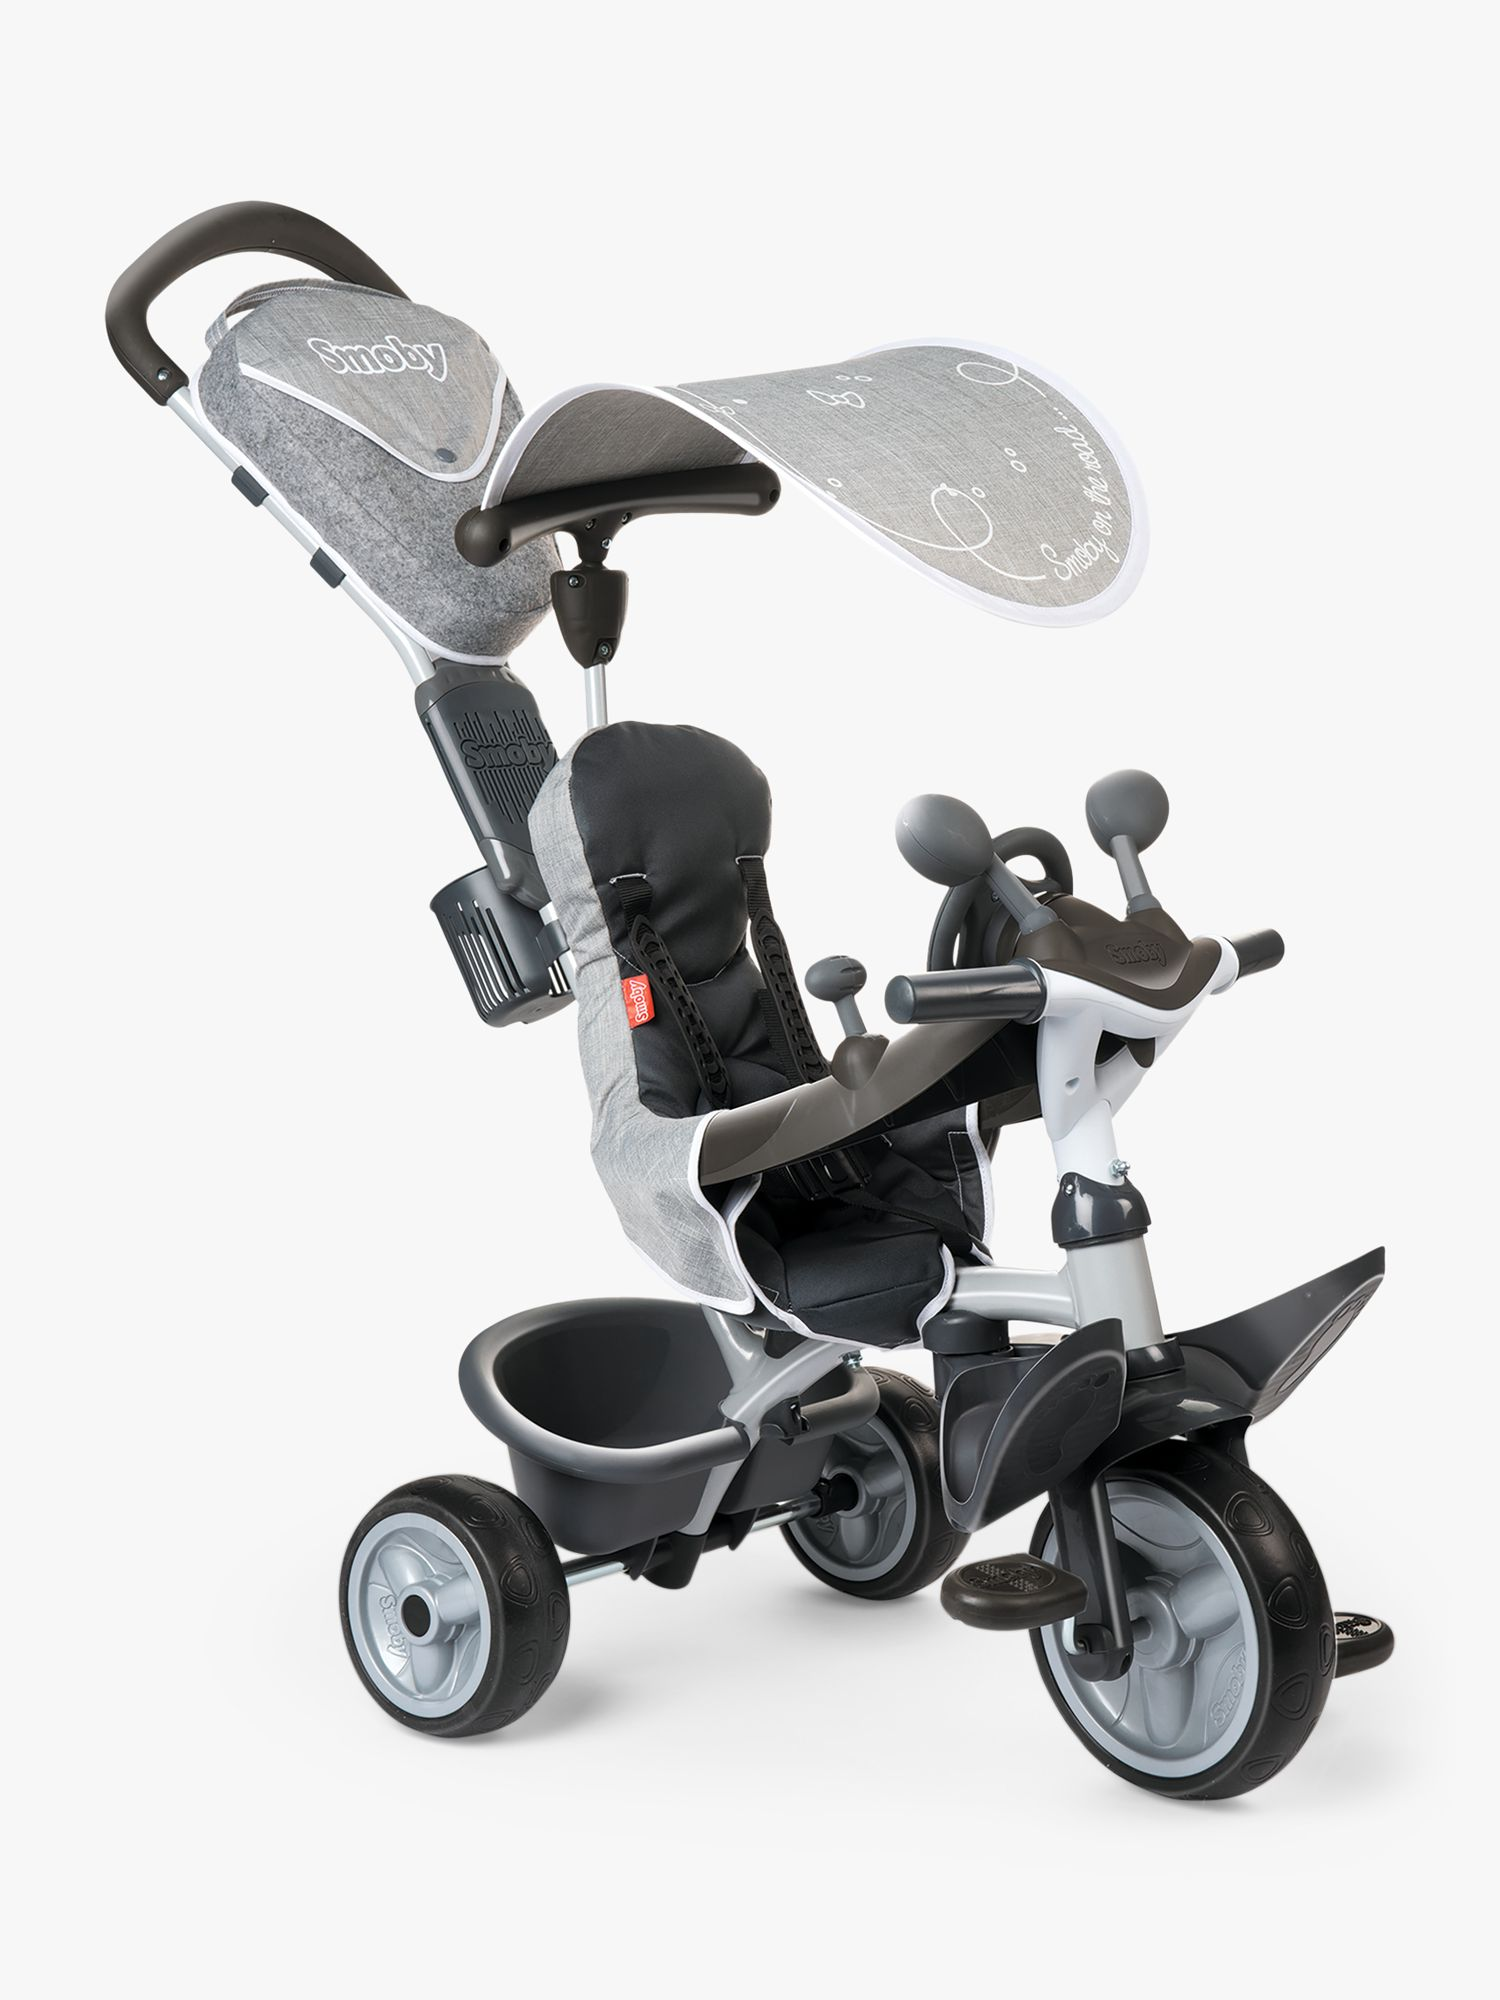 Smoby Smoby Baby Driver Tricycle, Grey